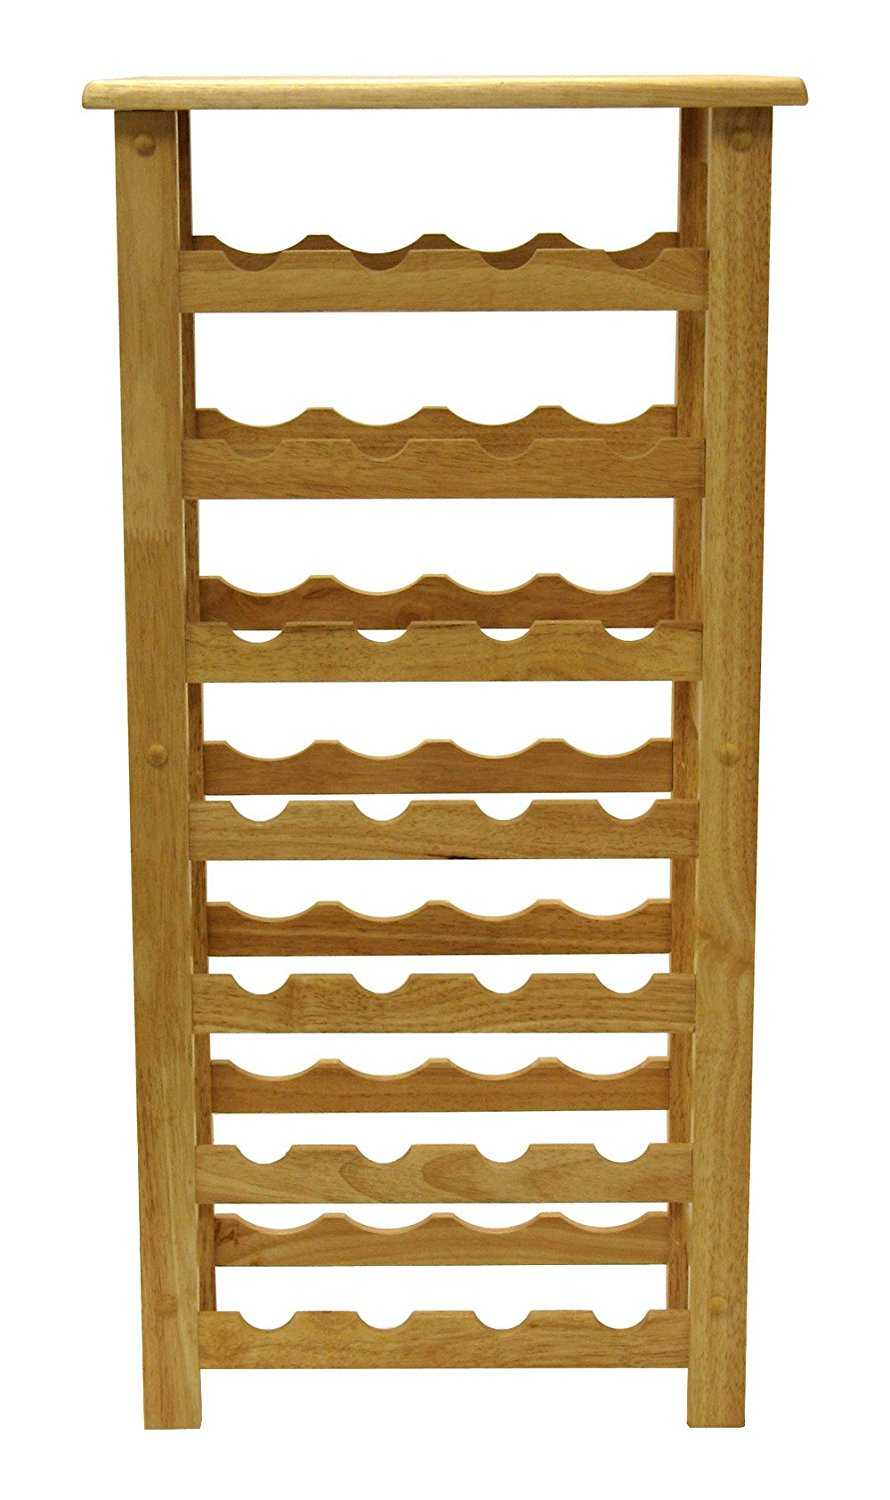 Wood 28 Bottle Wine Rack, Fast Shipping,Brand Winsome